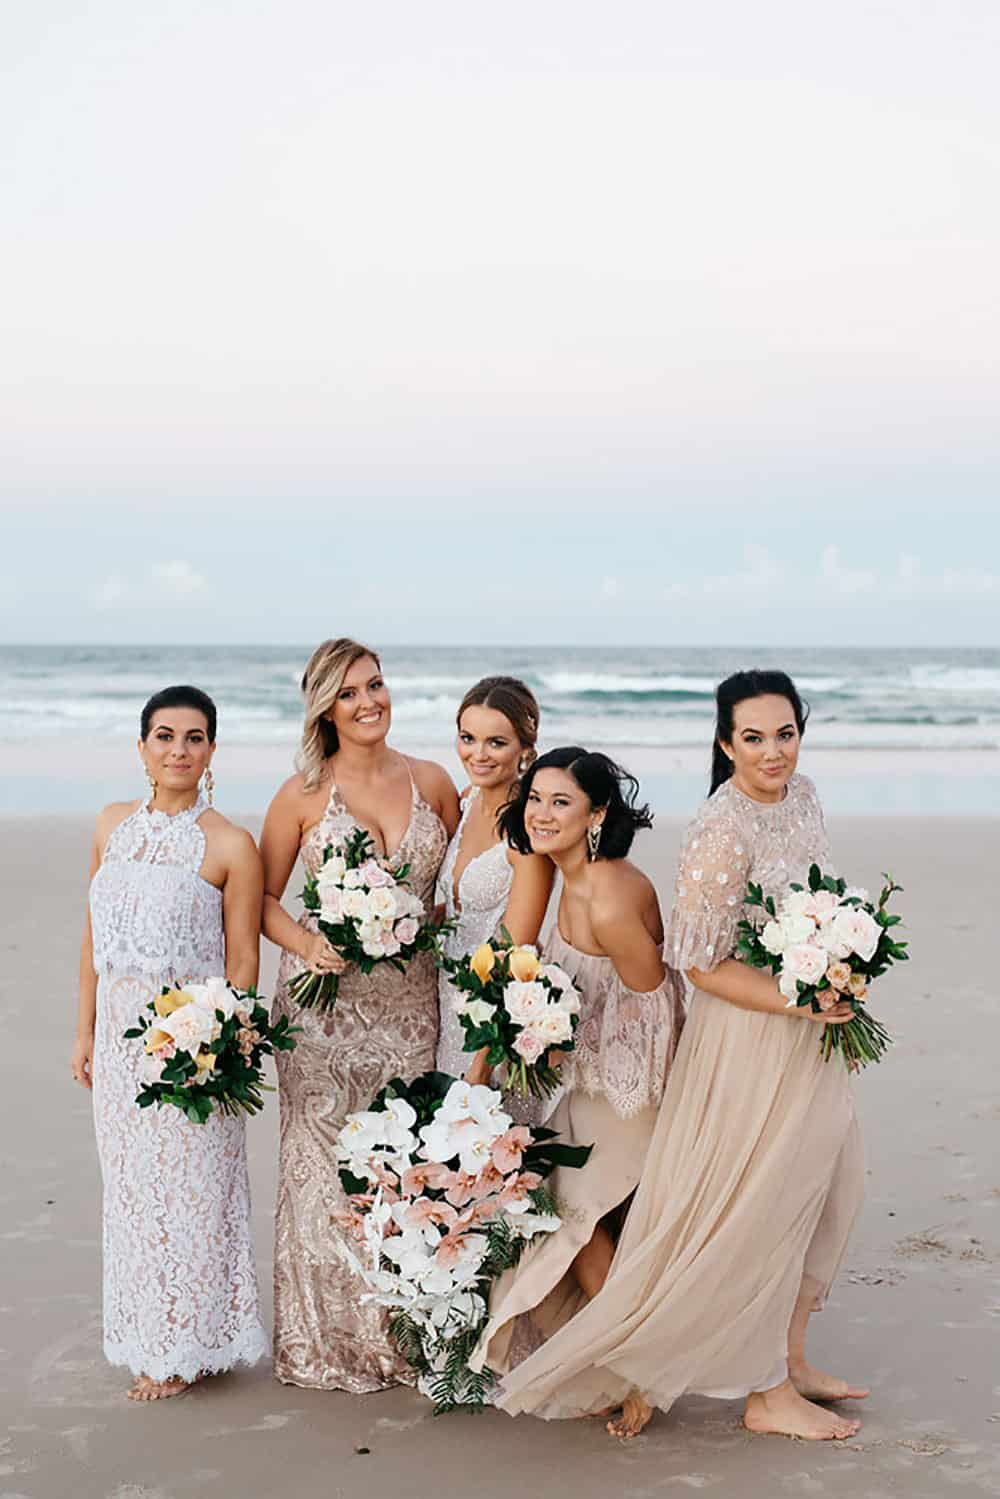 Hayley and her bridesmaids